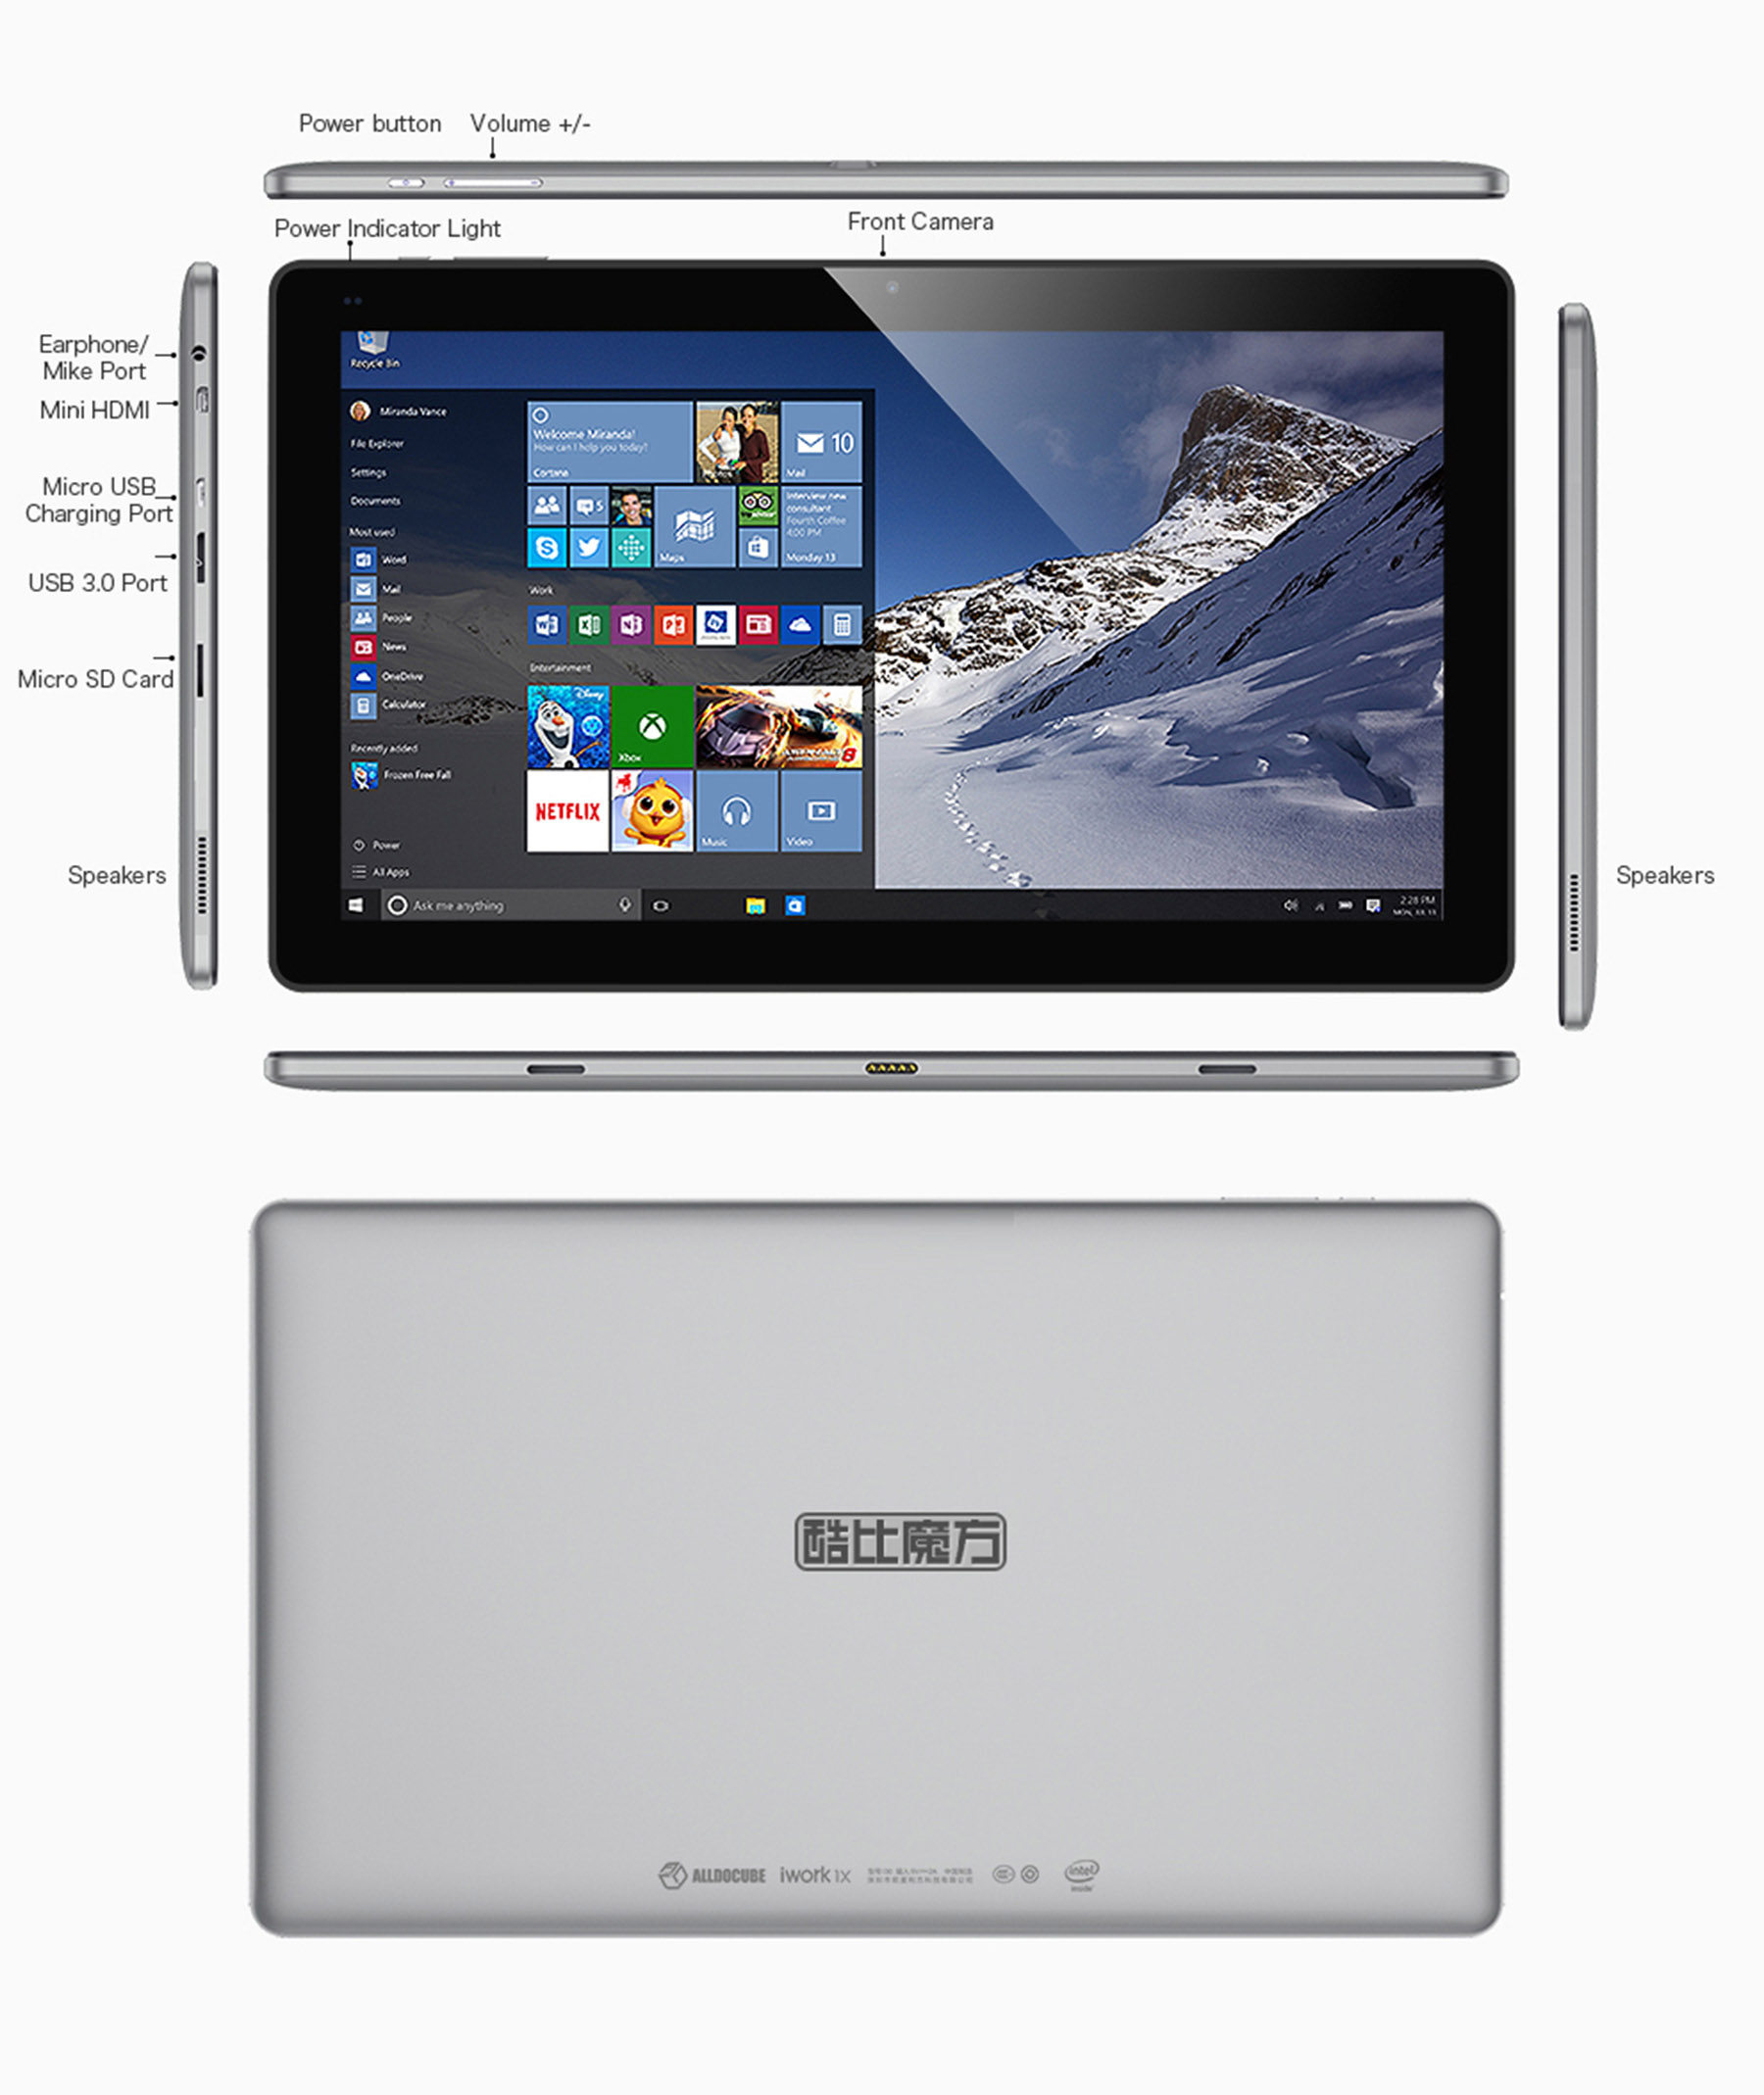 Cube iwork1x 2 in 1 Tablet PC 11.6 inch Windows 10 IPS Screen Intel Atom X5-Z8350 64bit Quad Core 1.44GHz 4GB RAM 64GB ROM Camera Bluetooth 4.0